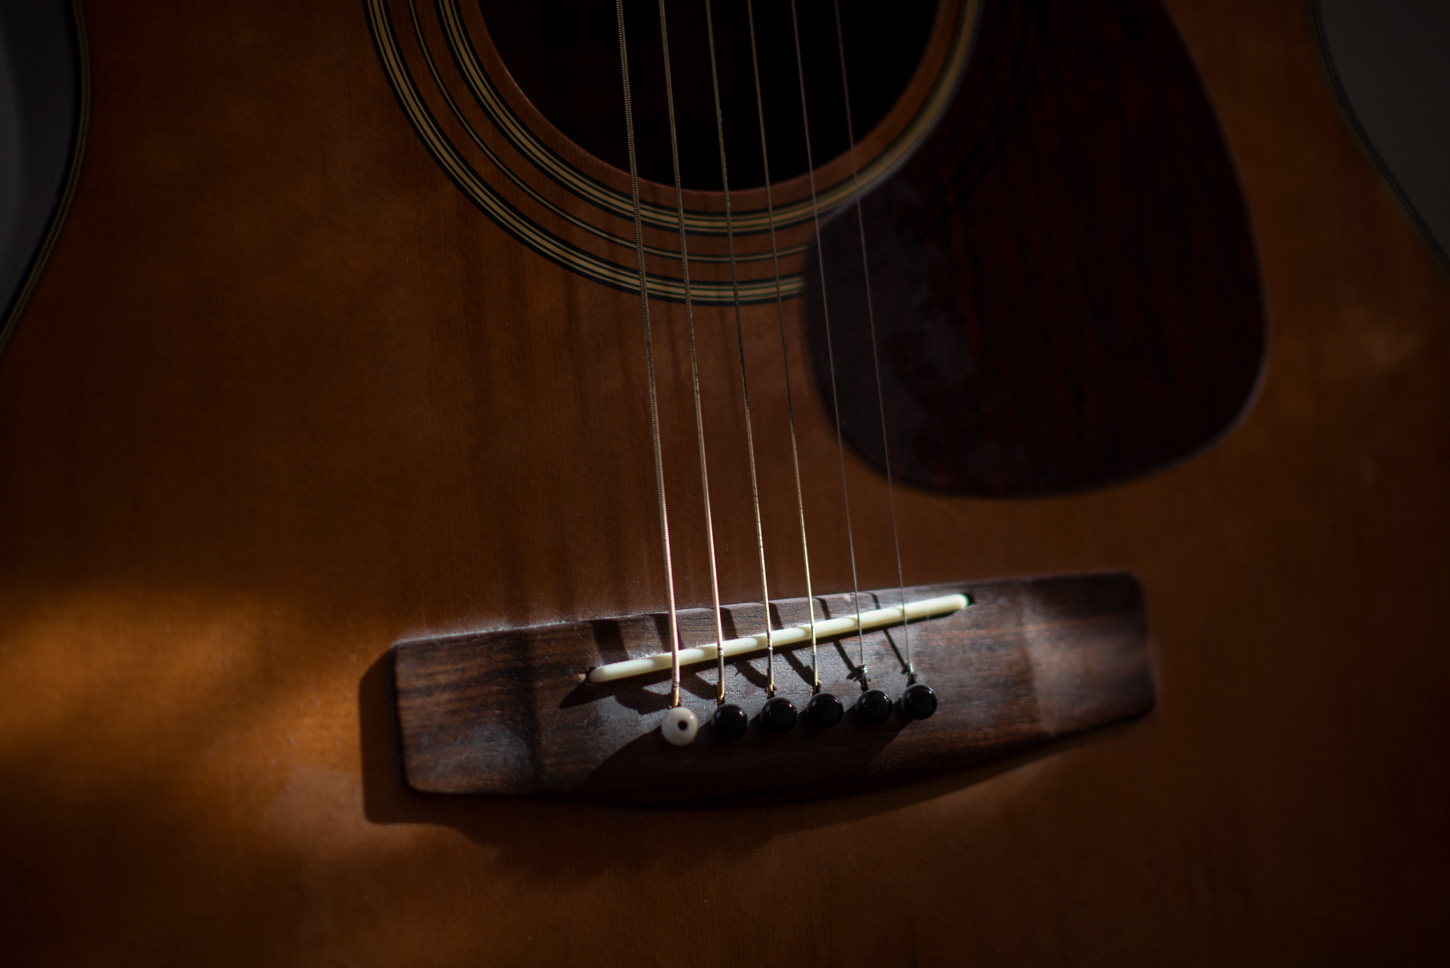 Guitar in Sunlight